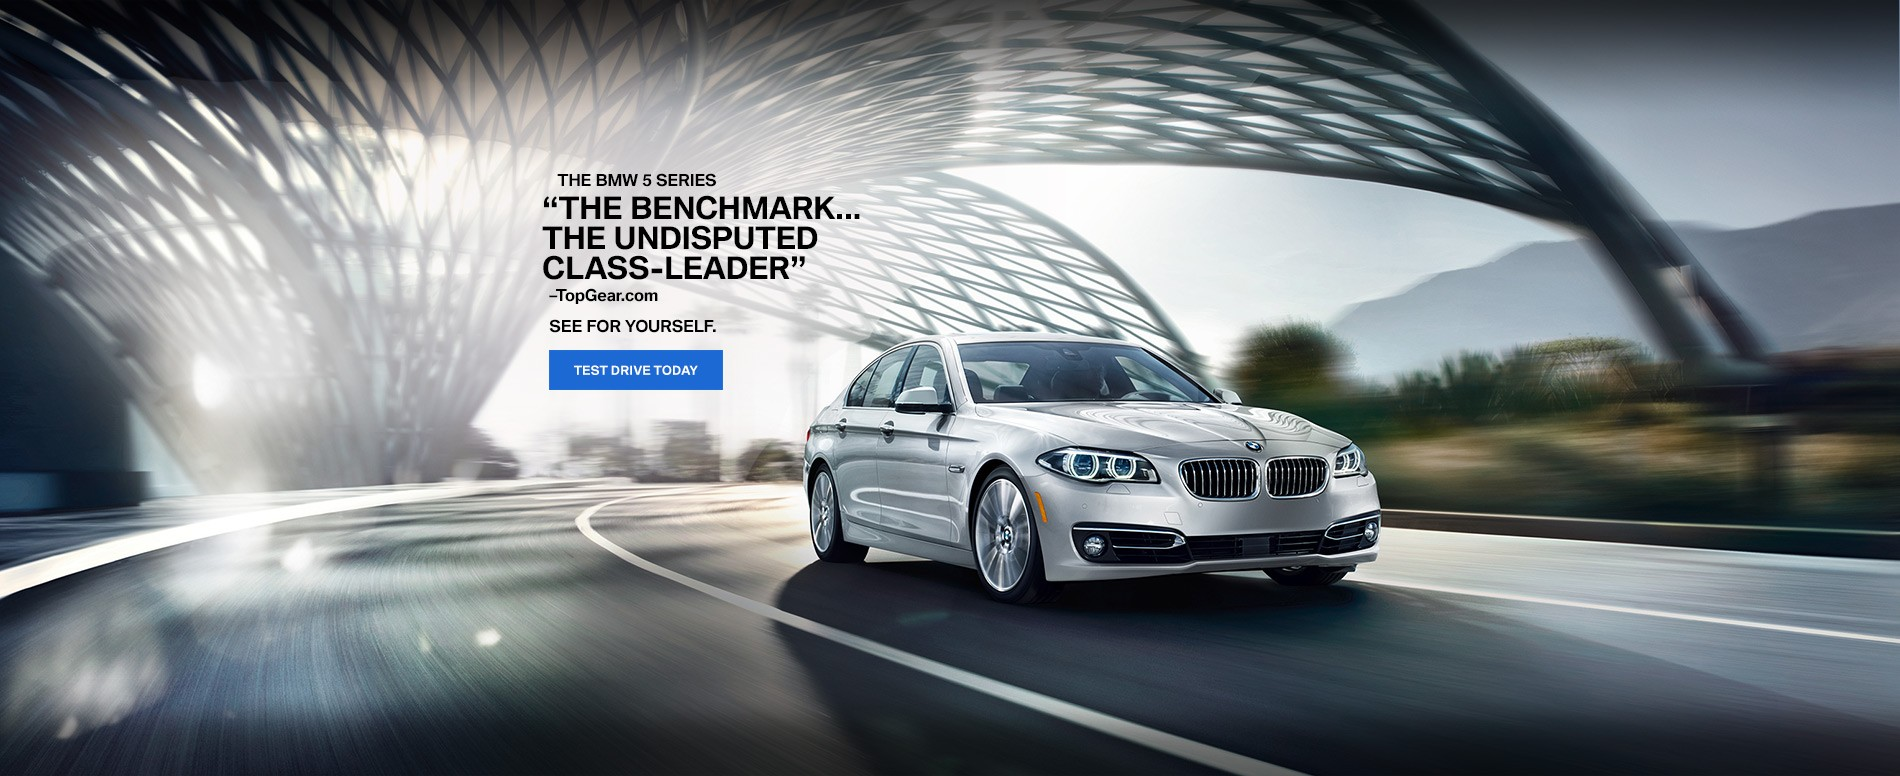 BMW 5 Series The benchmark... The undisputed class-leader